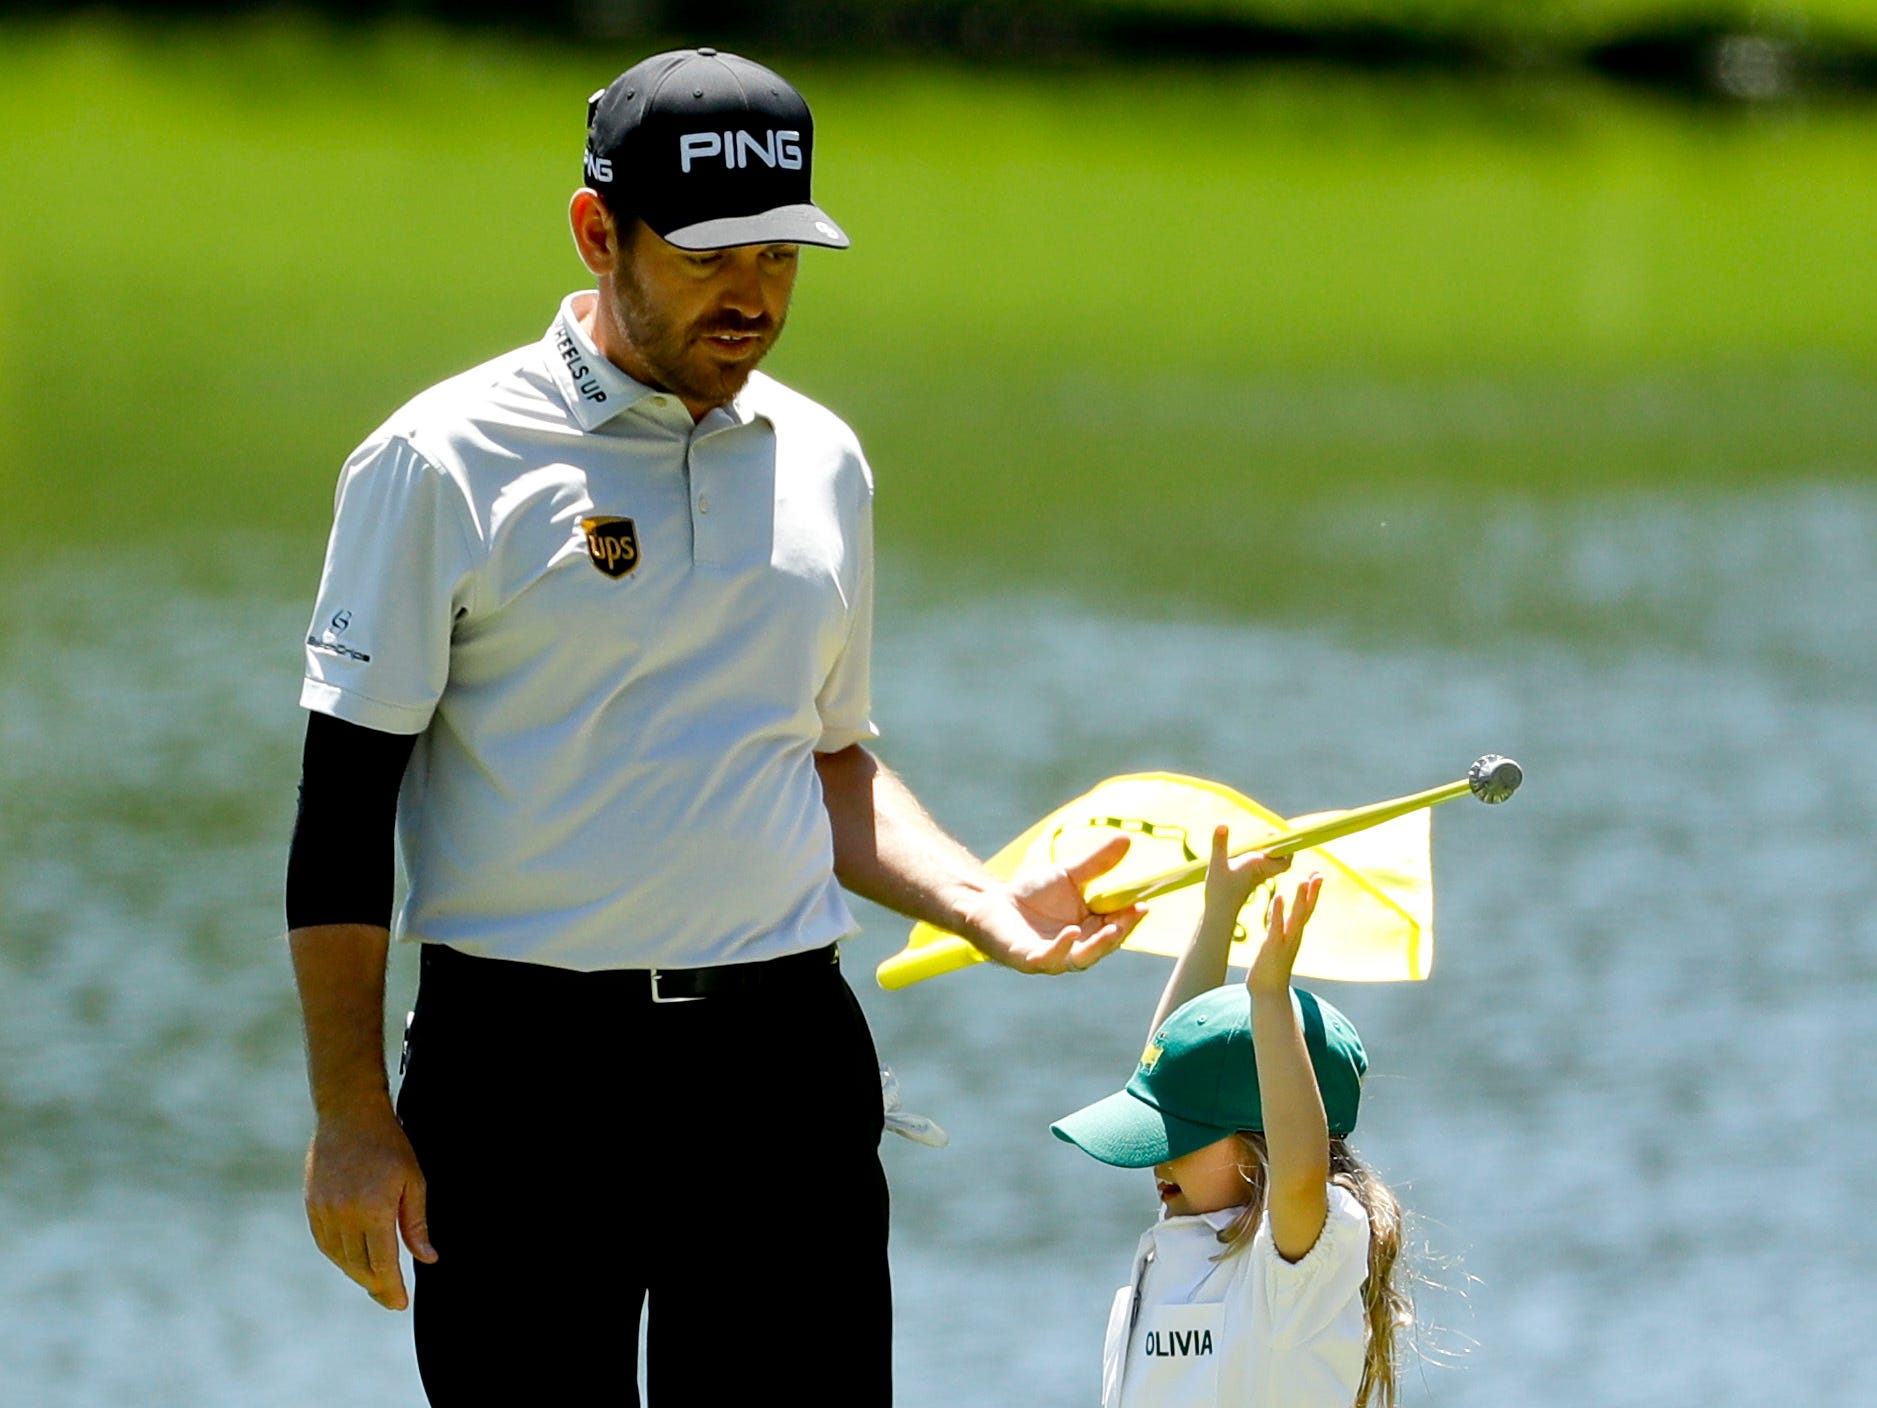 Louis Oosthuizen helps his daughter Olivia with the flag on the third hole.